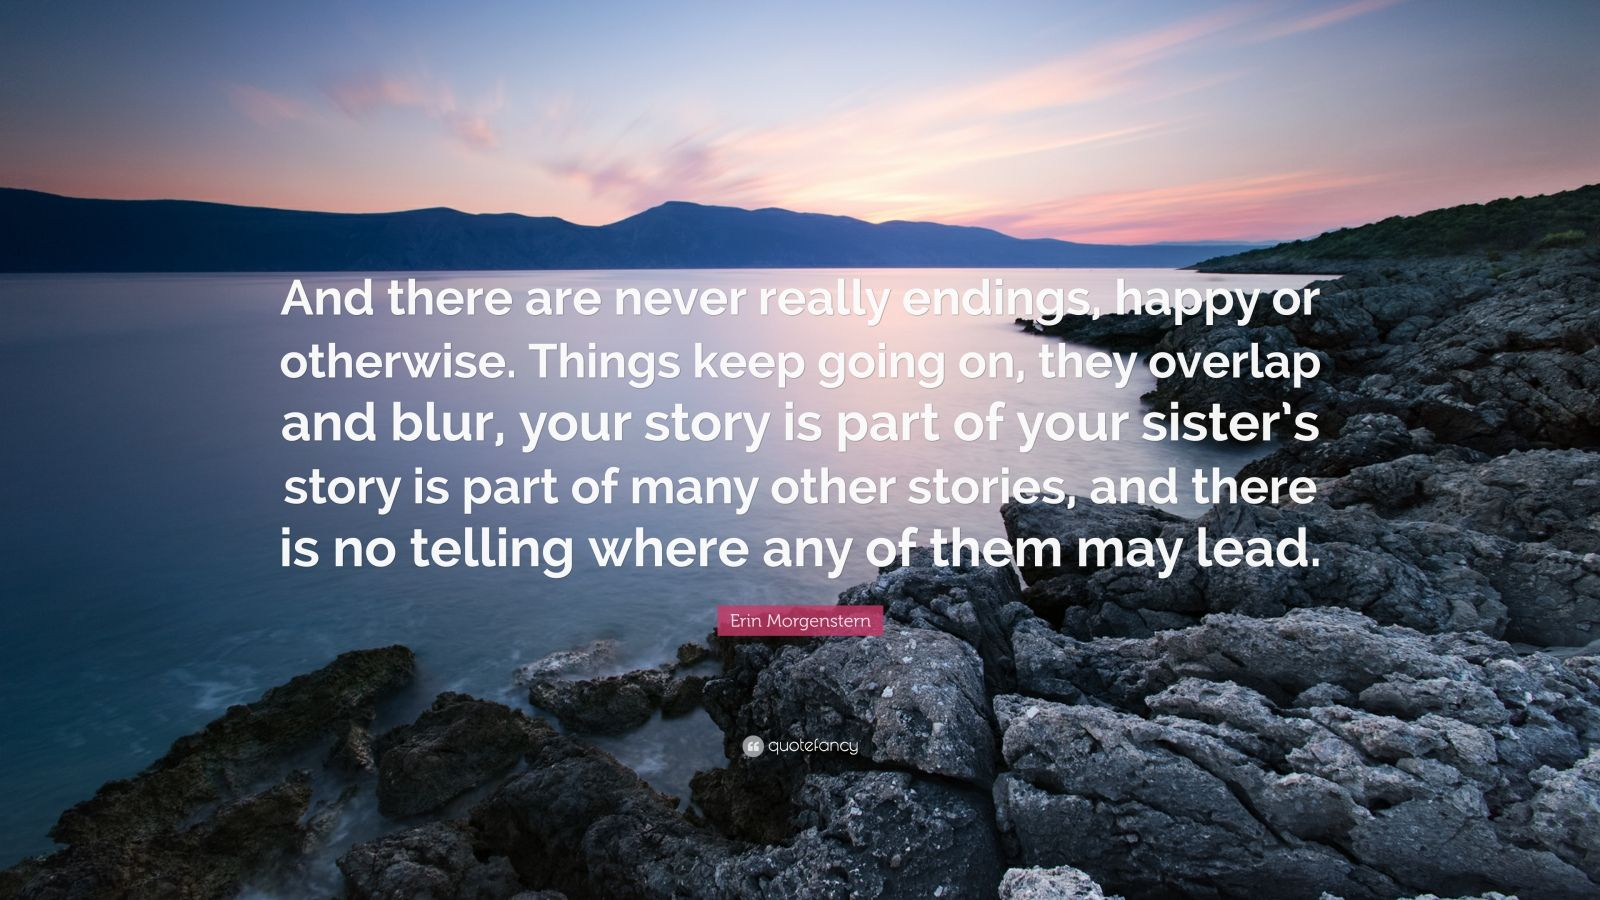 """Erin Morgenstern Quote: """"And there are never really endings, happy or otherwise. Things keep going on, they overlap and blur, your story is part of your sister's story is part of many other stories, and there is no telling where any of them may lead."""""""